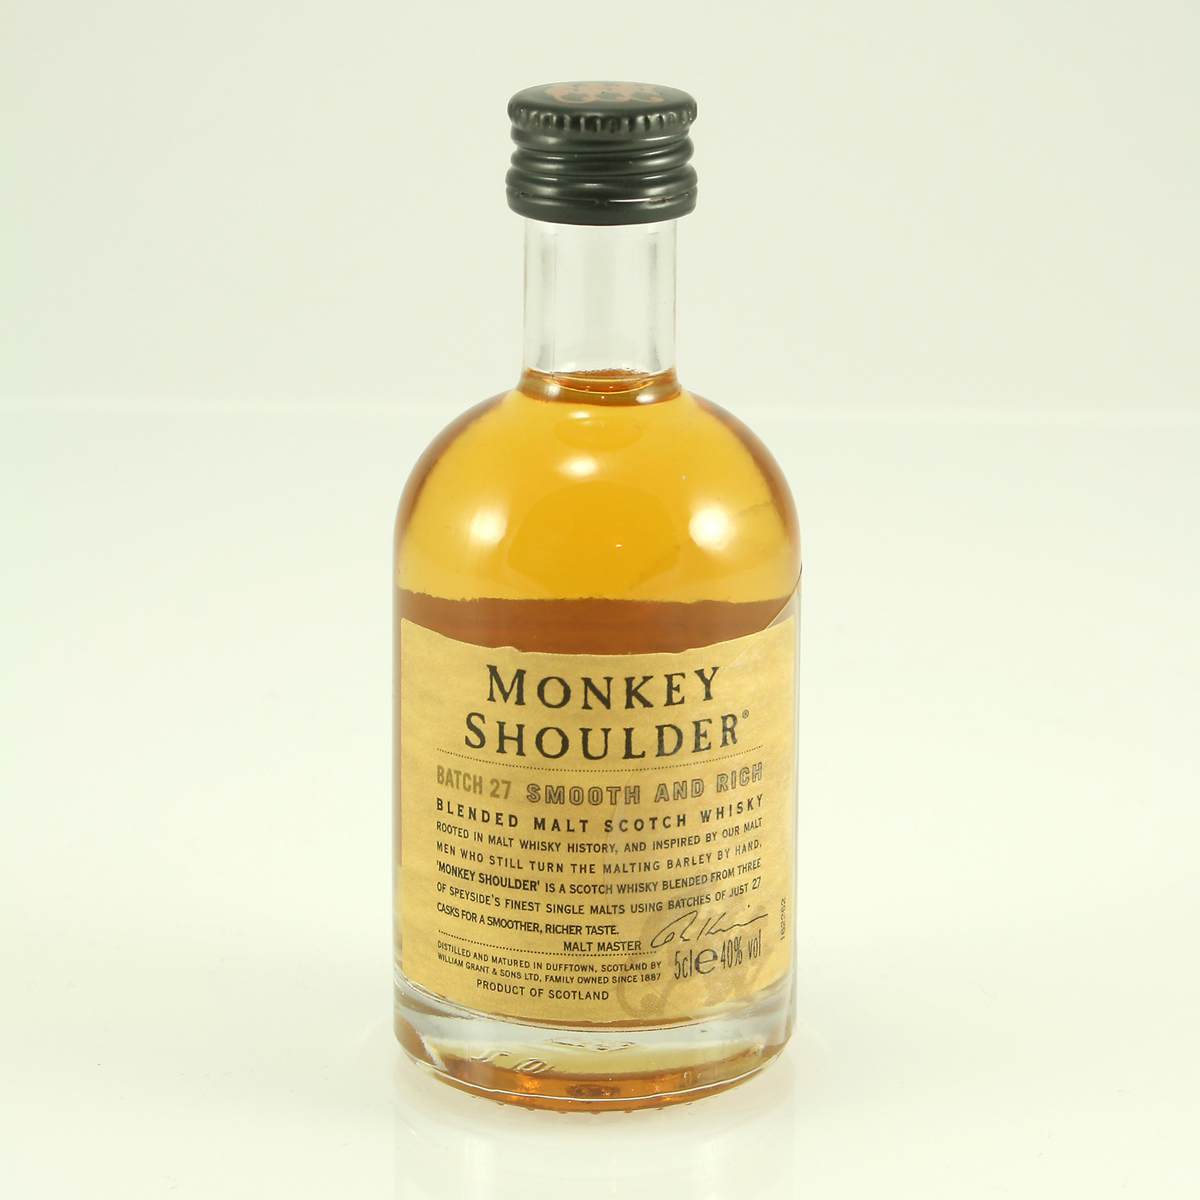 MONKEY SHOULDER 40% 5cl